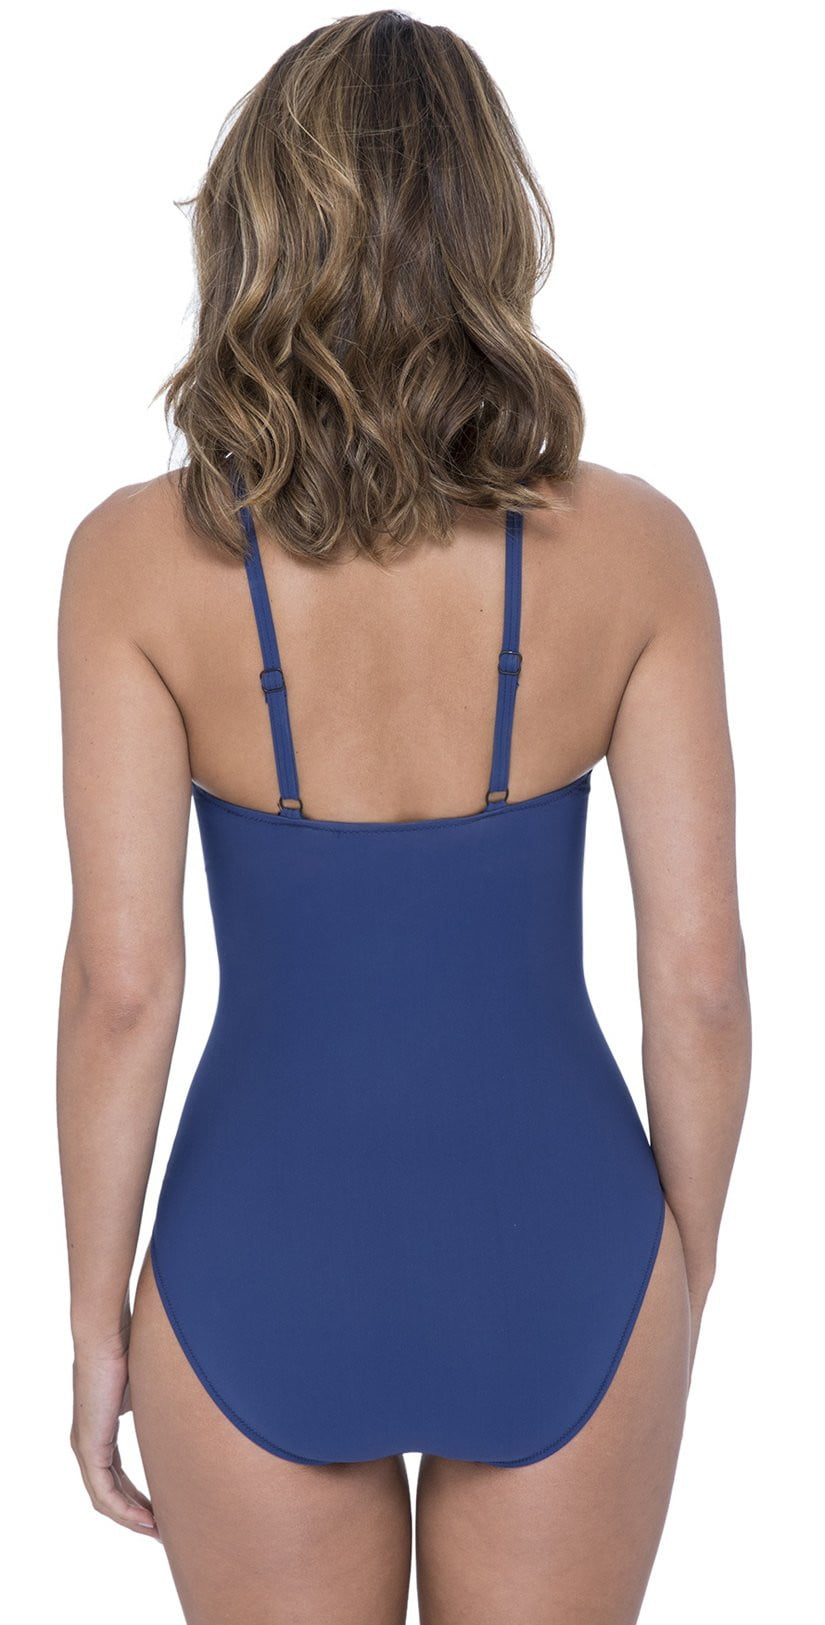 Profile by Gottex Murano One Piece High Neck Swimsuit in Petrol E932-2077-427: